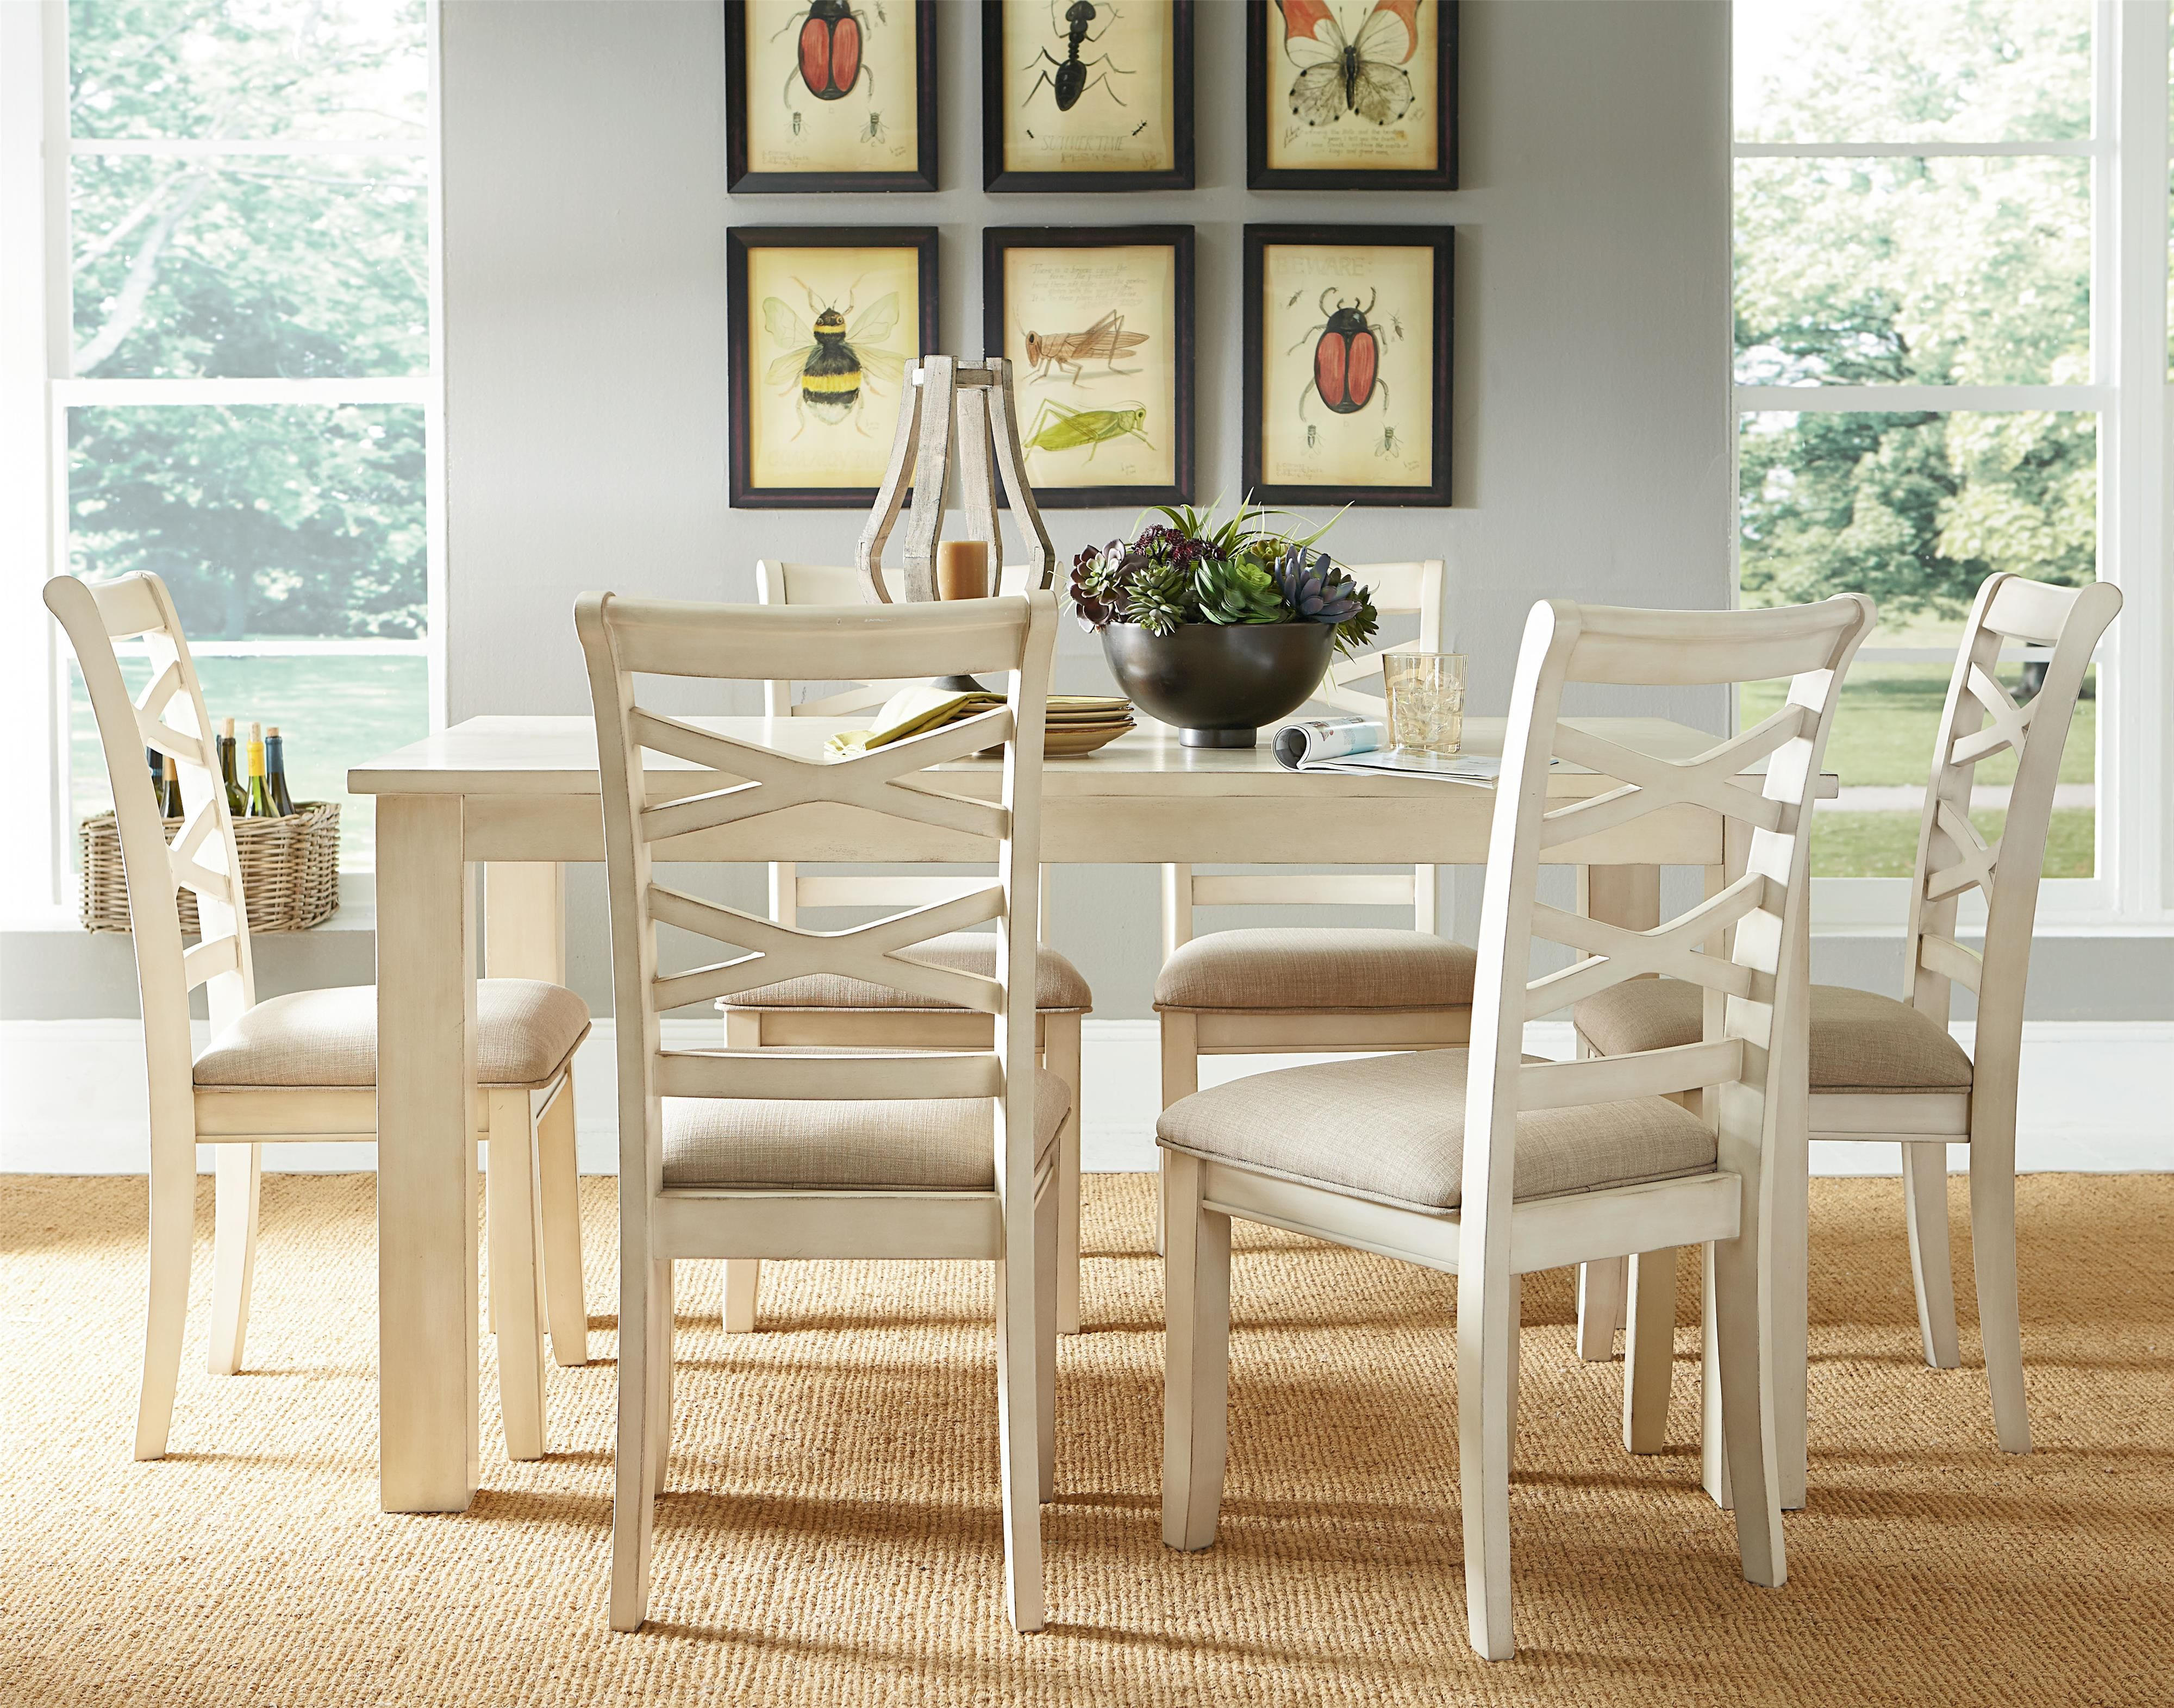 Redondo Vanilla Casual Dining Room Set by Standard Furniture